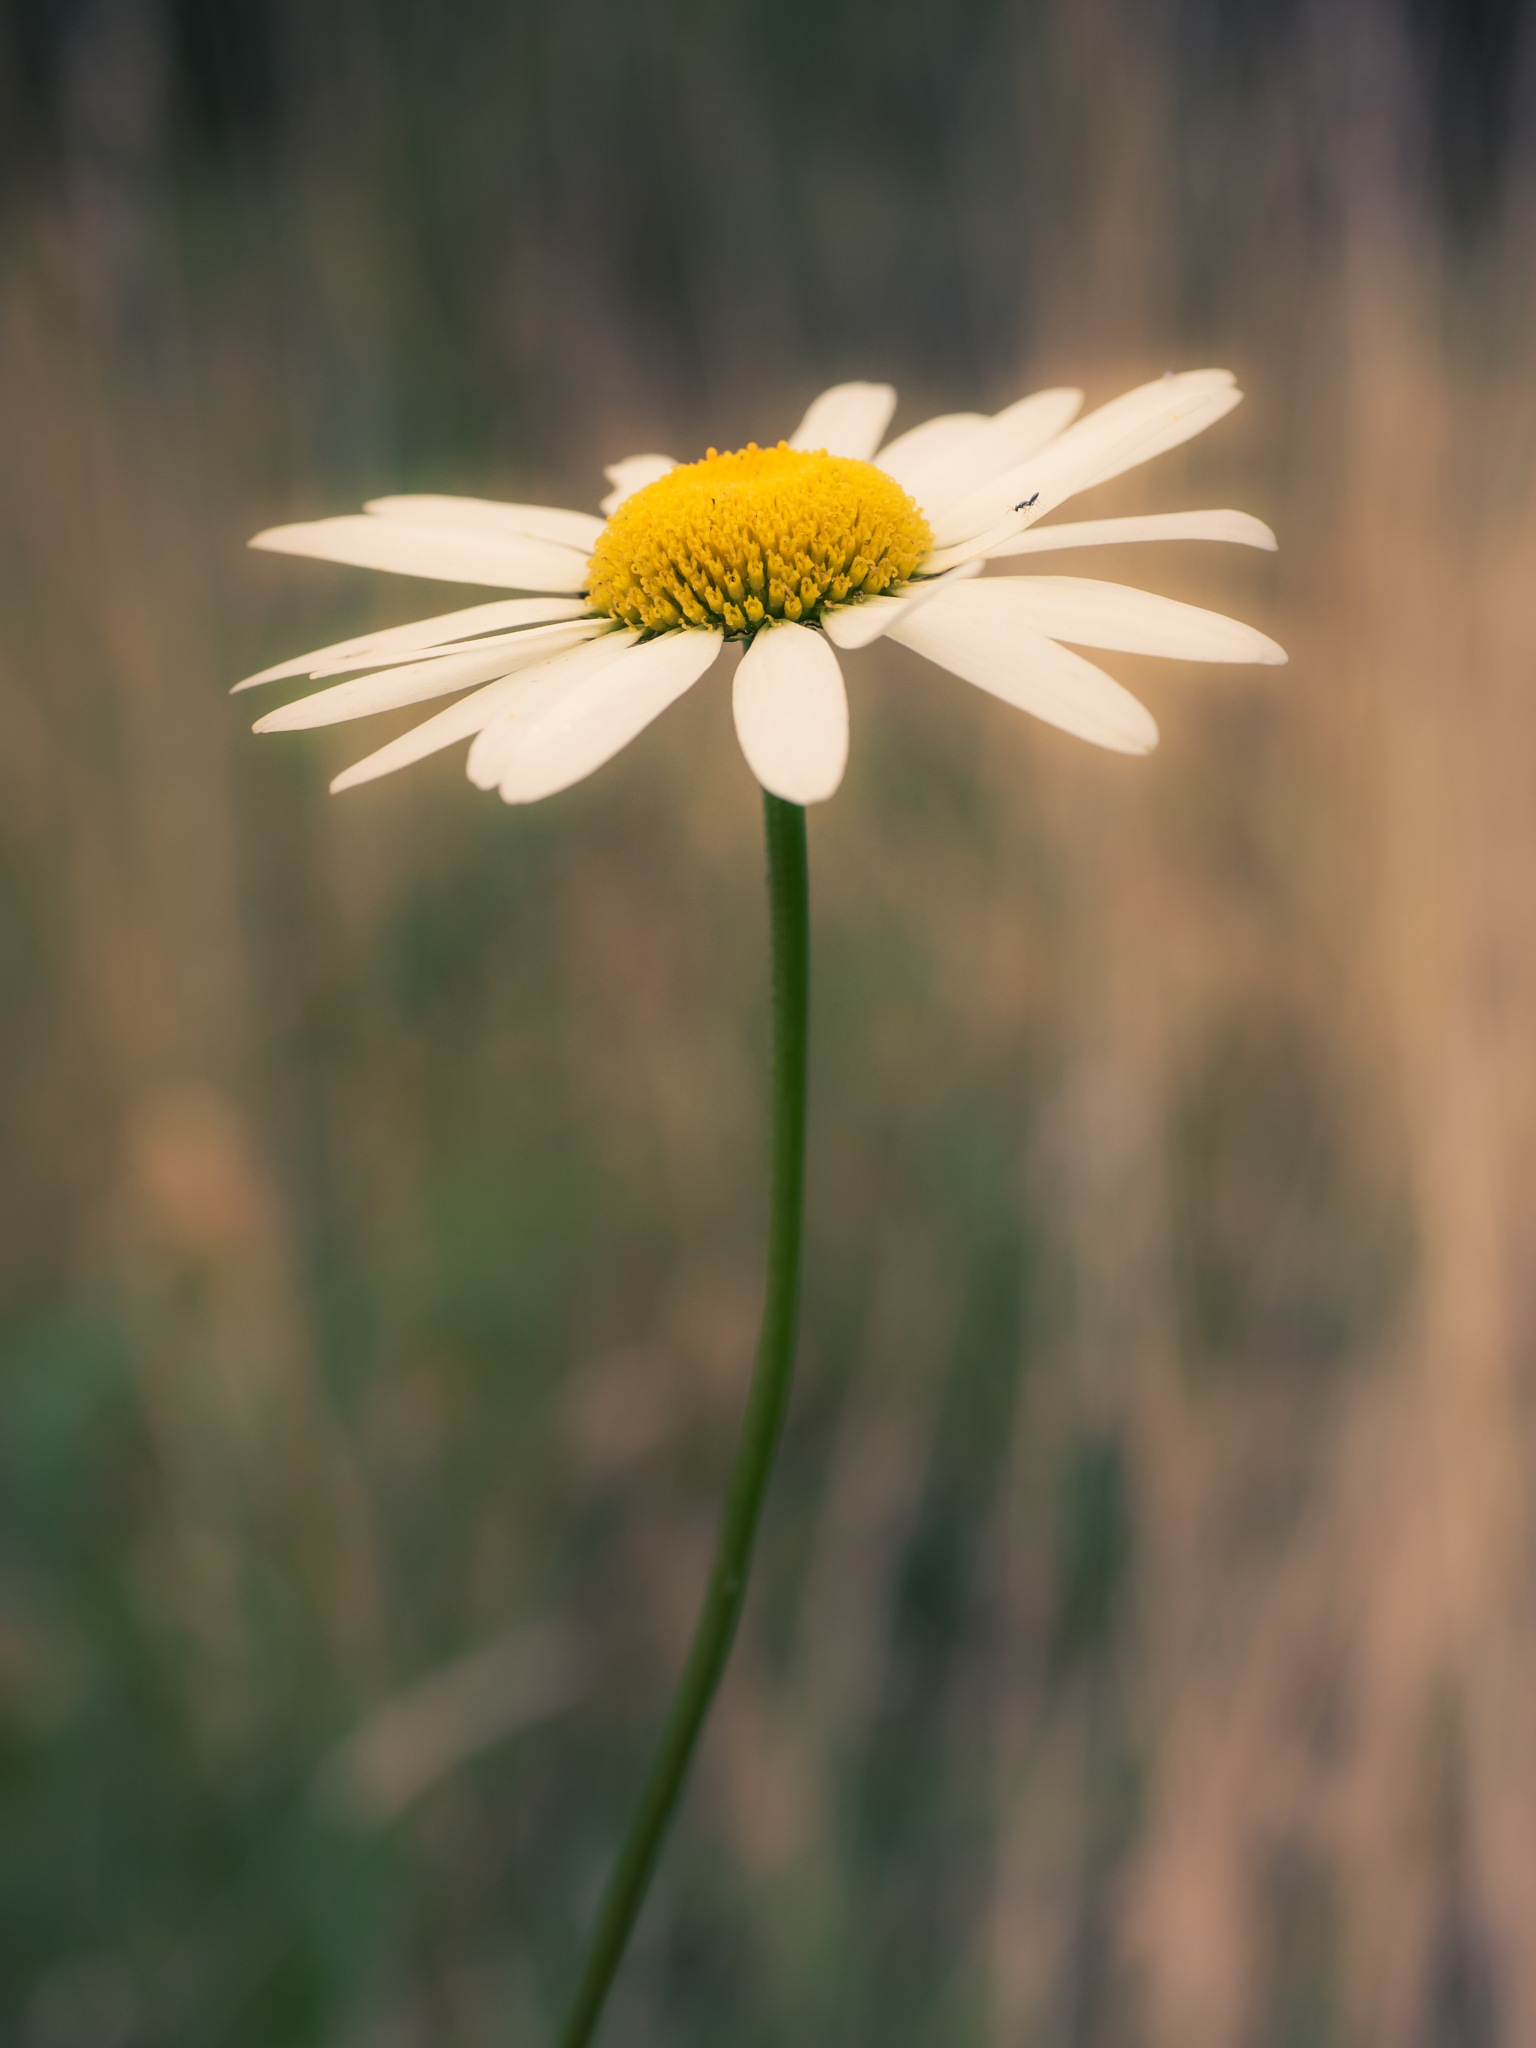 Still Summer in the Meadows by Sarah Walters